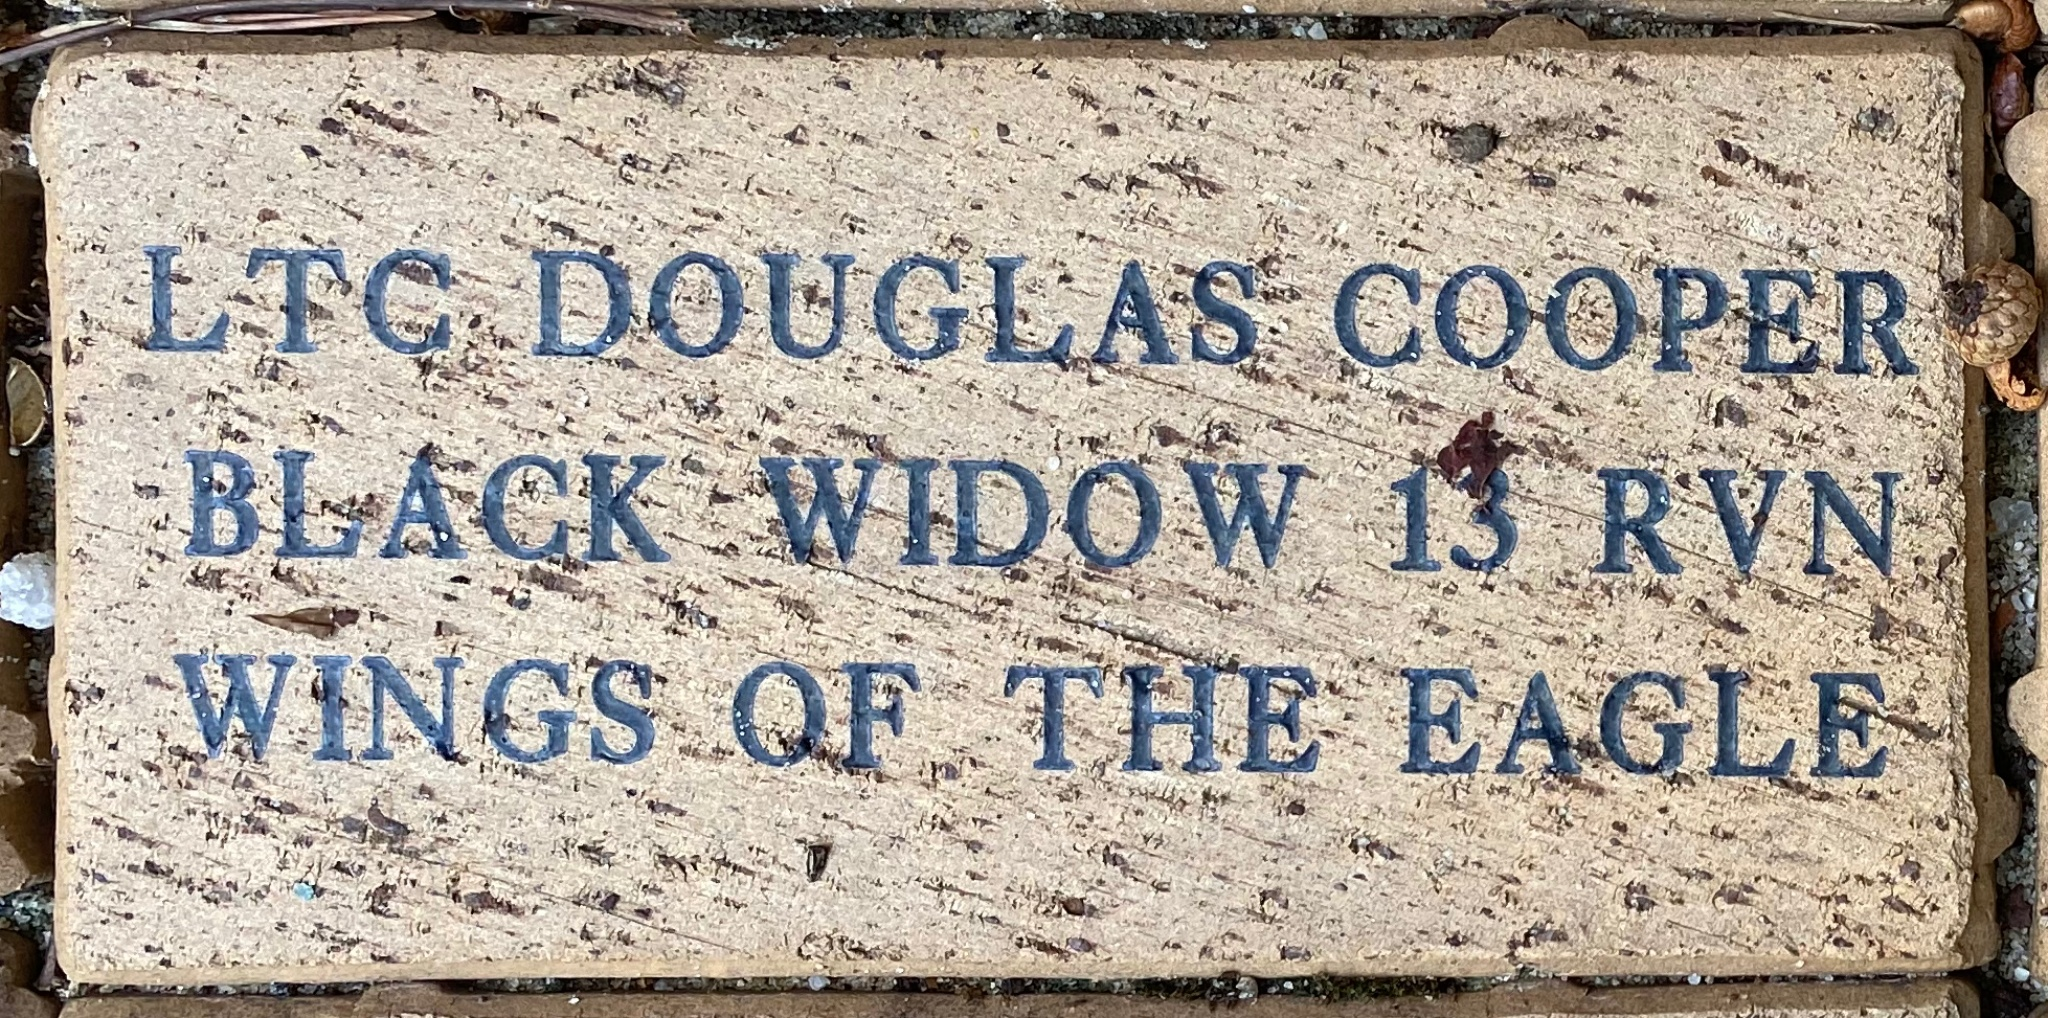 LTC DOUGLAS COOPER BLACK WIDOW 13 RVN WINGS OF THE EAGLE